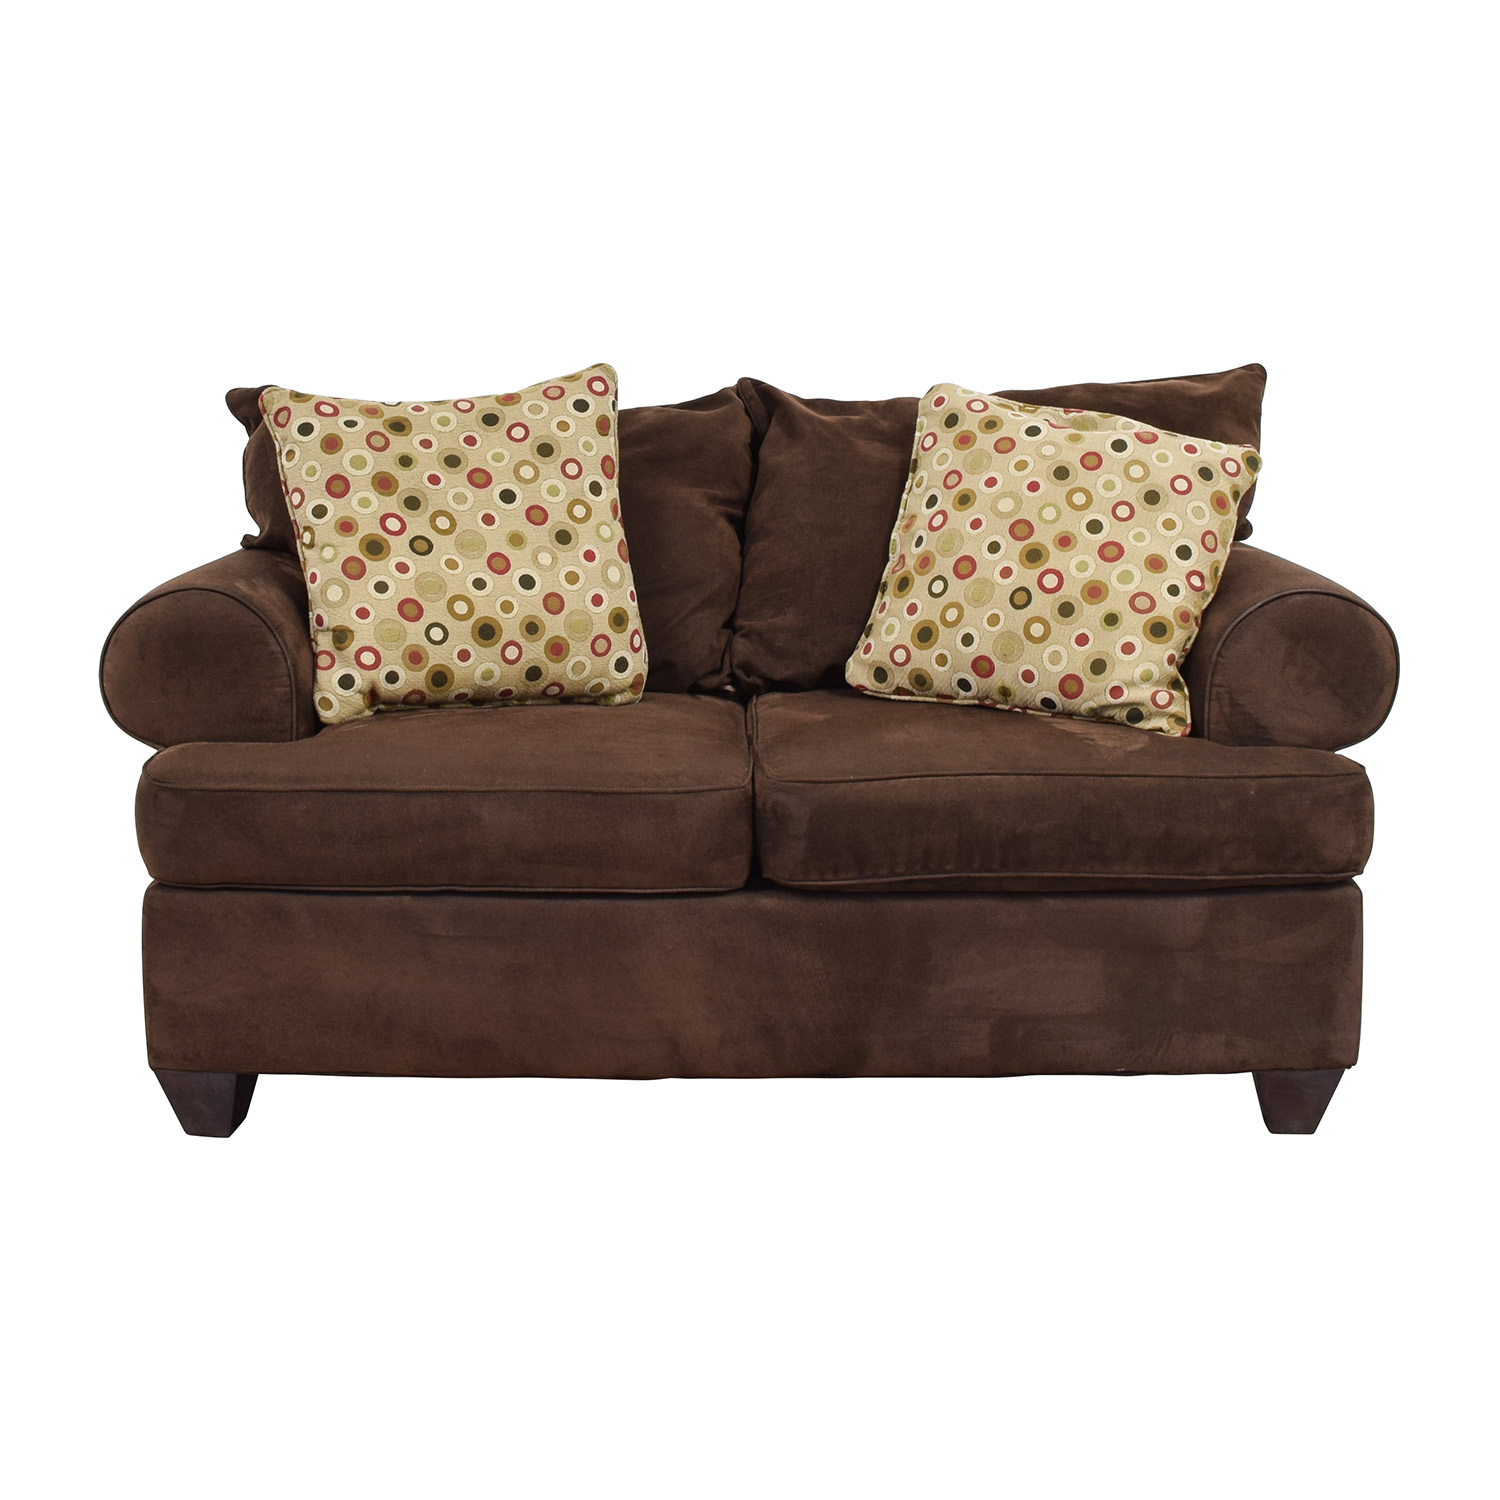 buy Raymour & Flanigan Brown Two-Cushion Loveseat Raymour and Flanigan